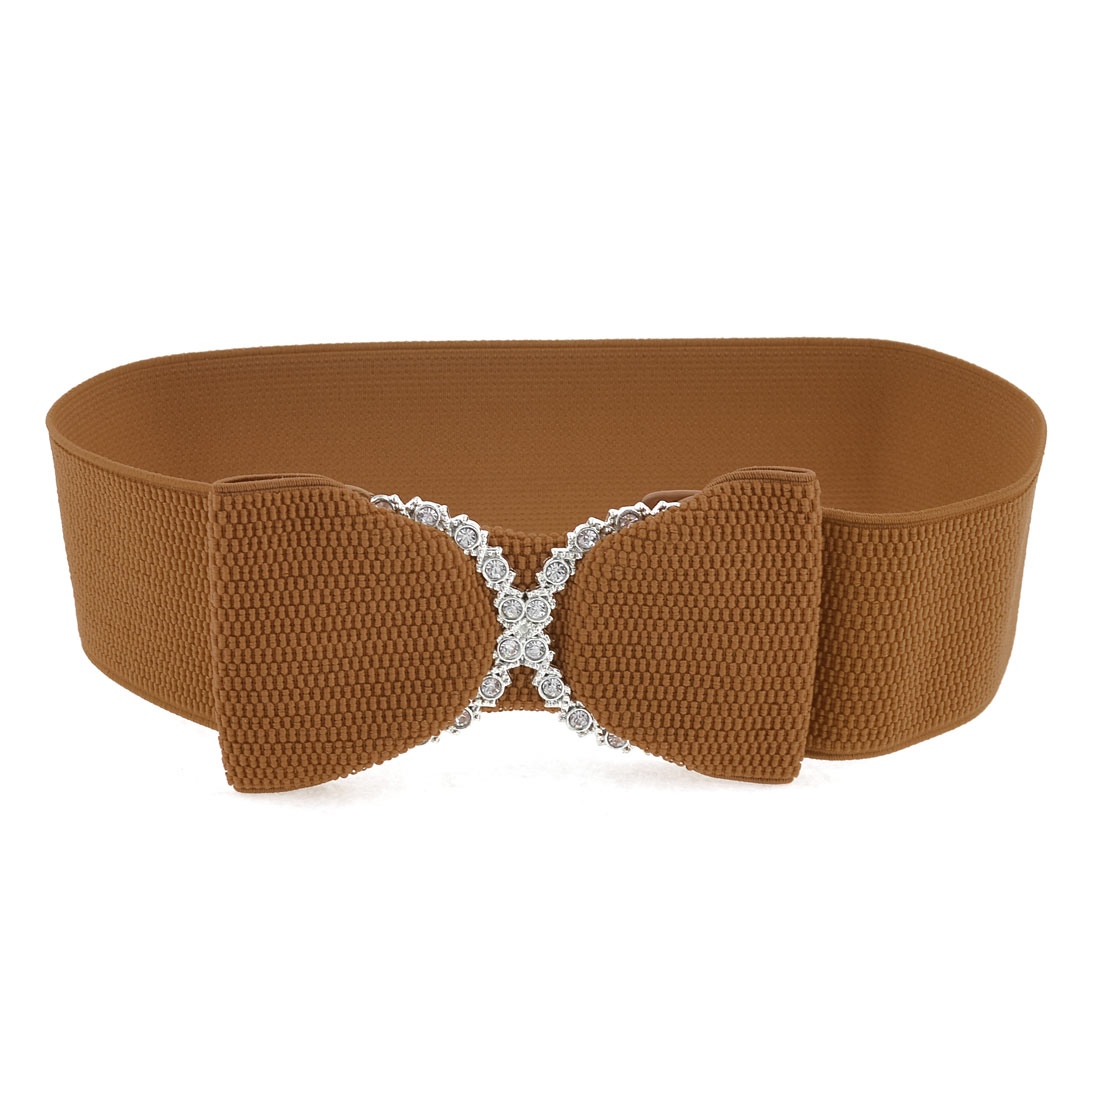 Brown Wide Elastic Band Rhinestones Decor Waist Belt for Women